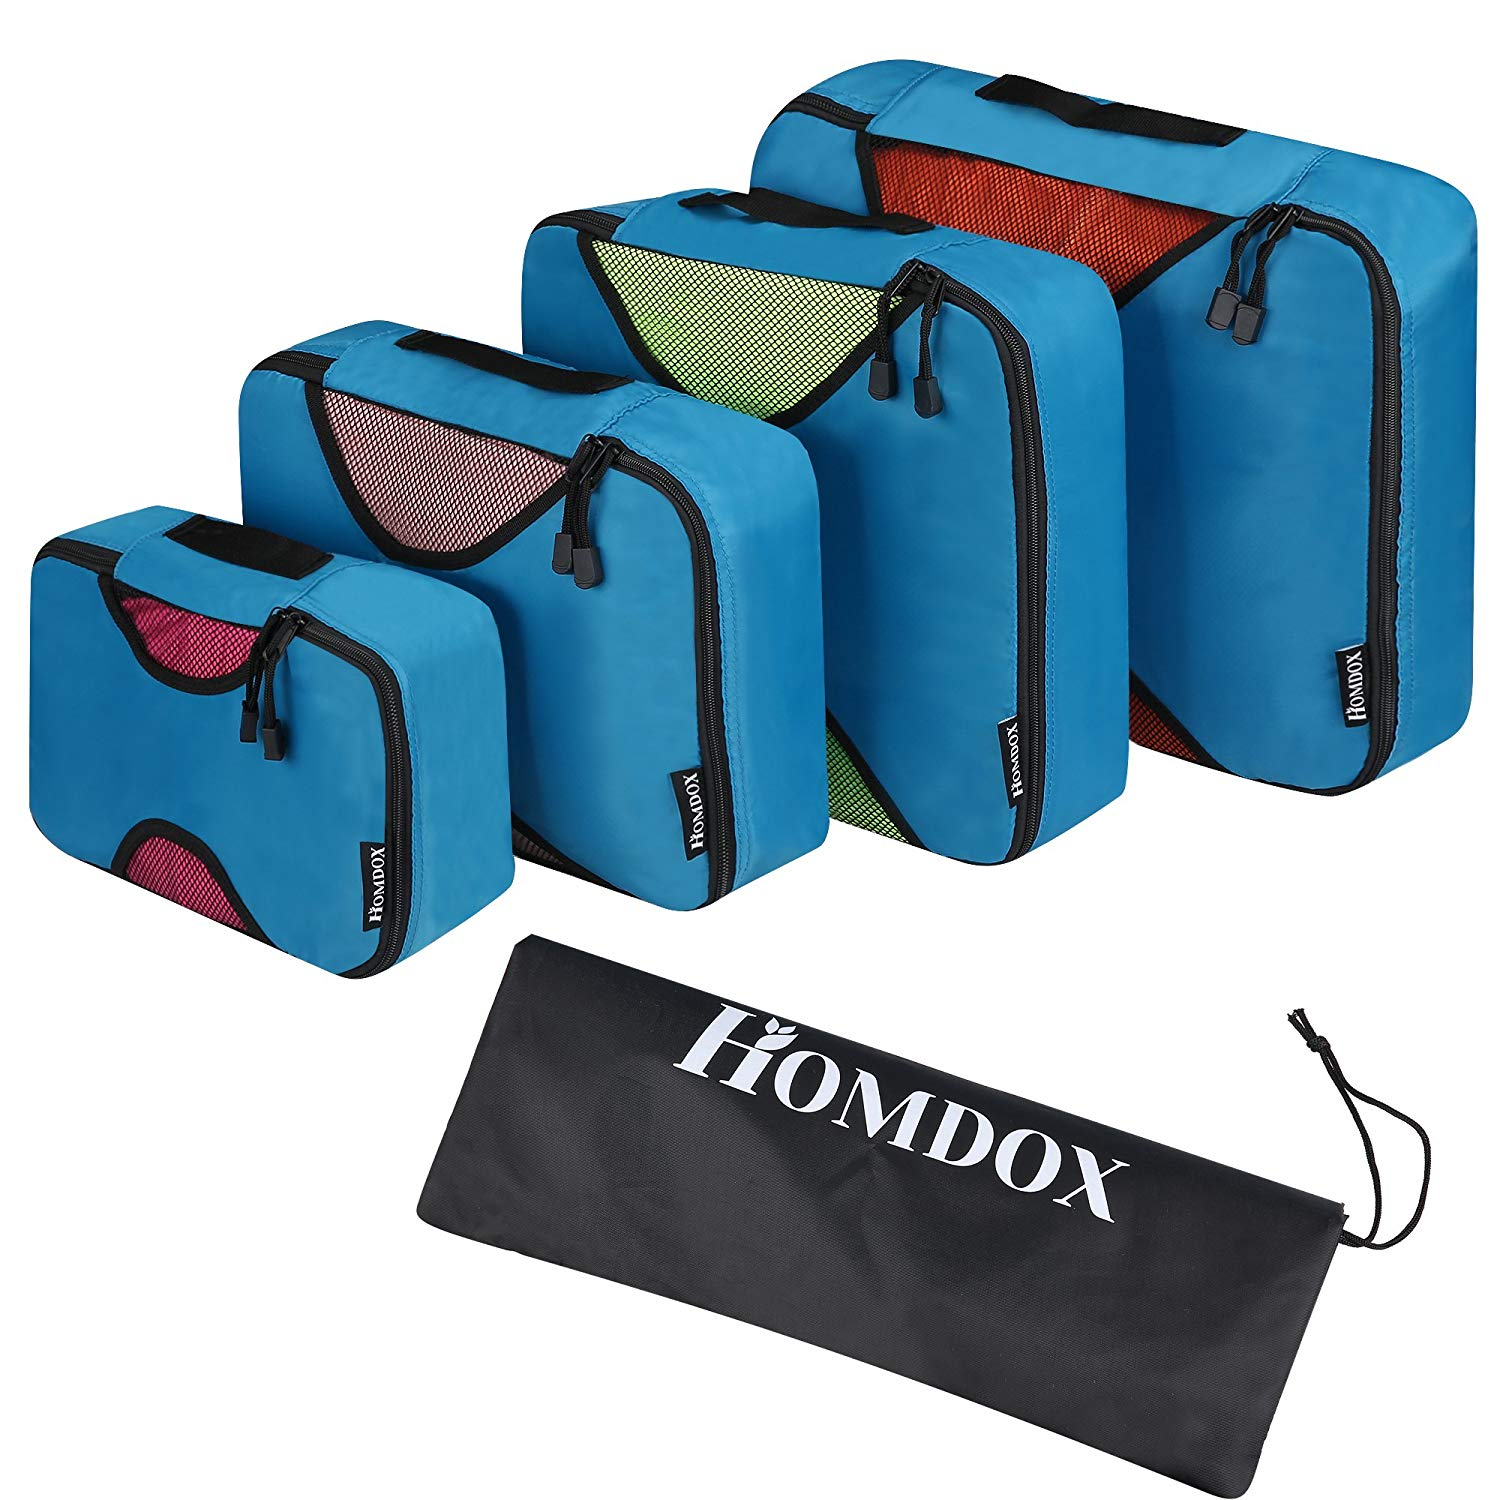 Homdox Packing Cubes - 4pc Set Travel Organizers with Laundry Bag, Camping Backpacking Organisers Luggage